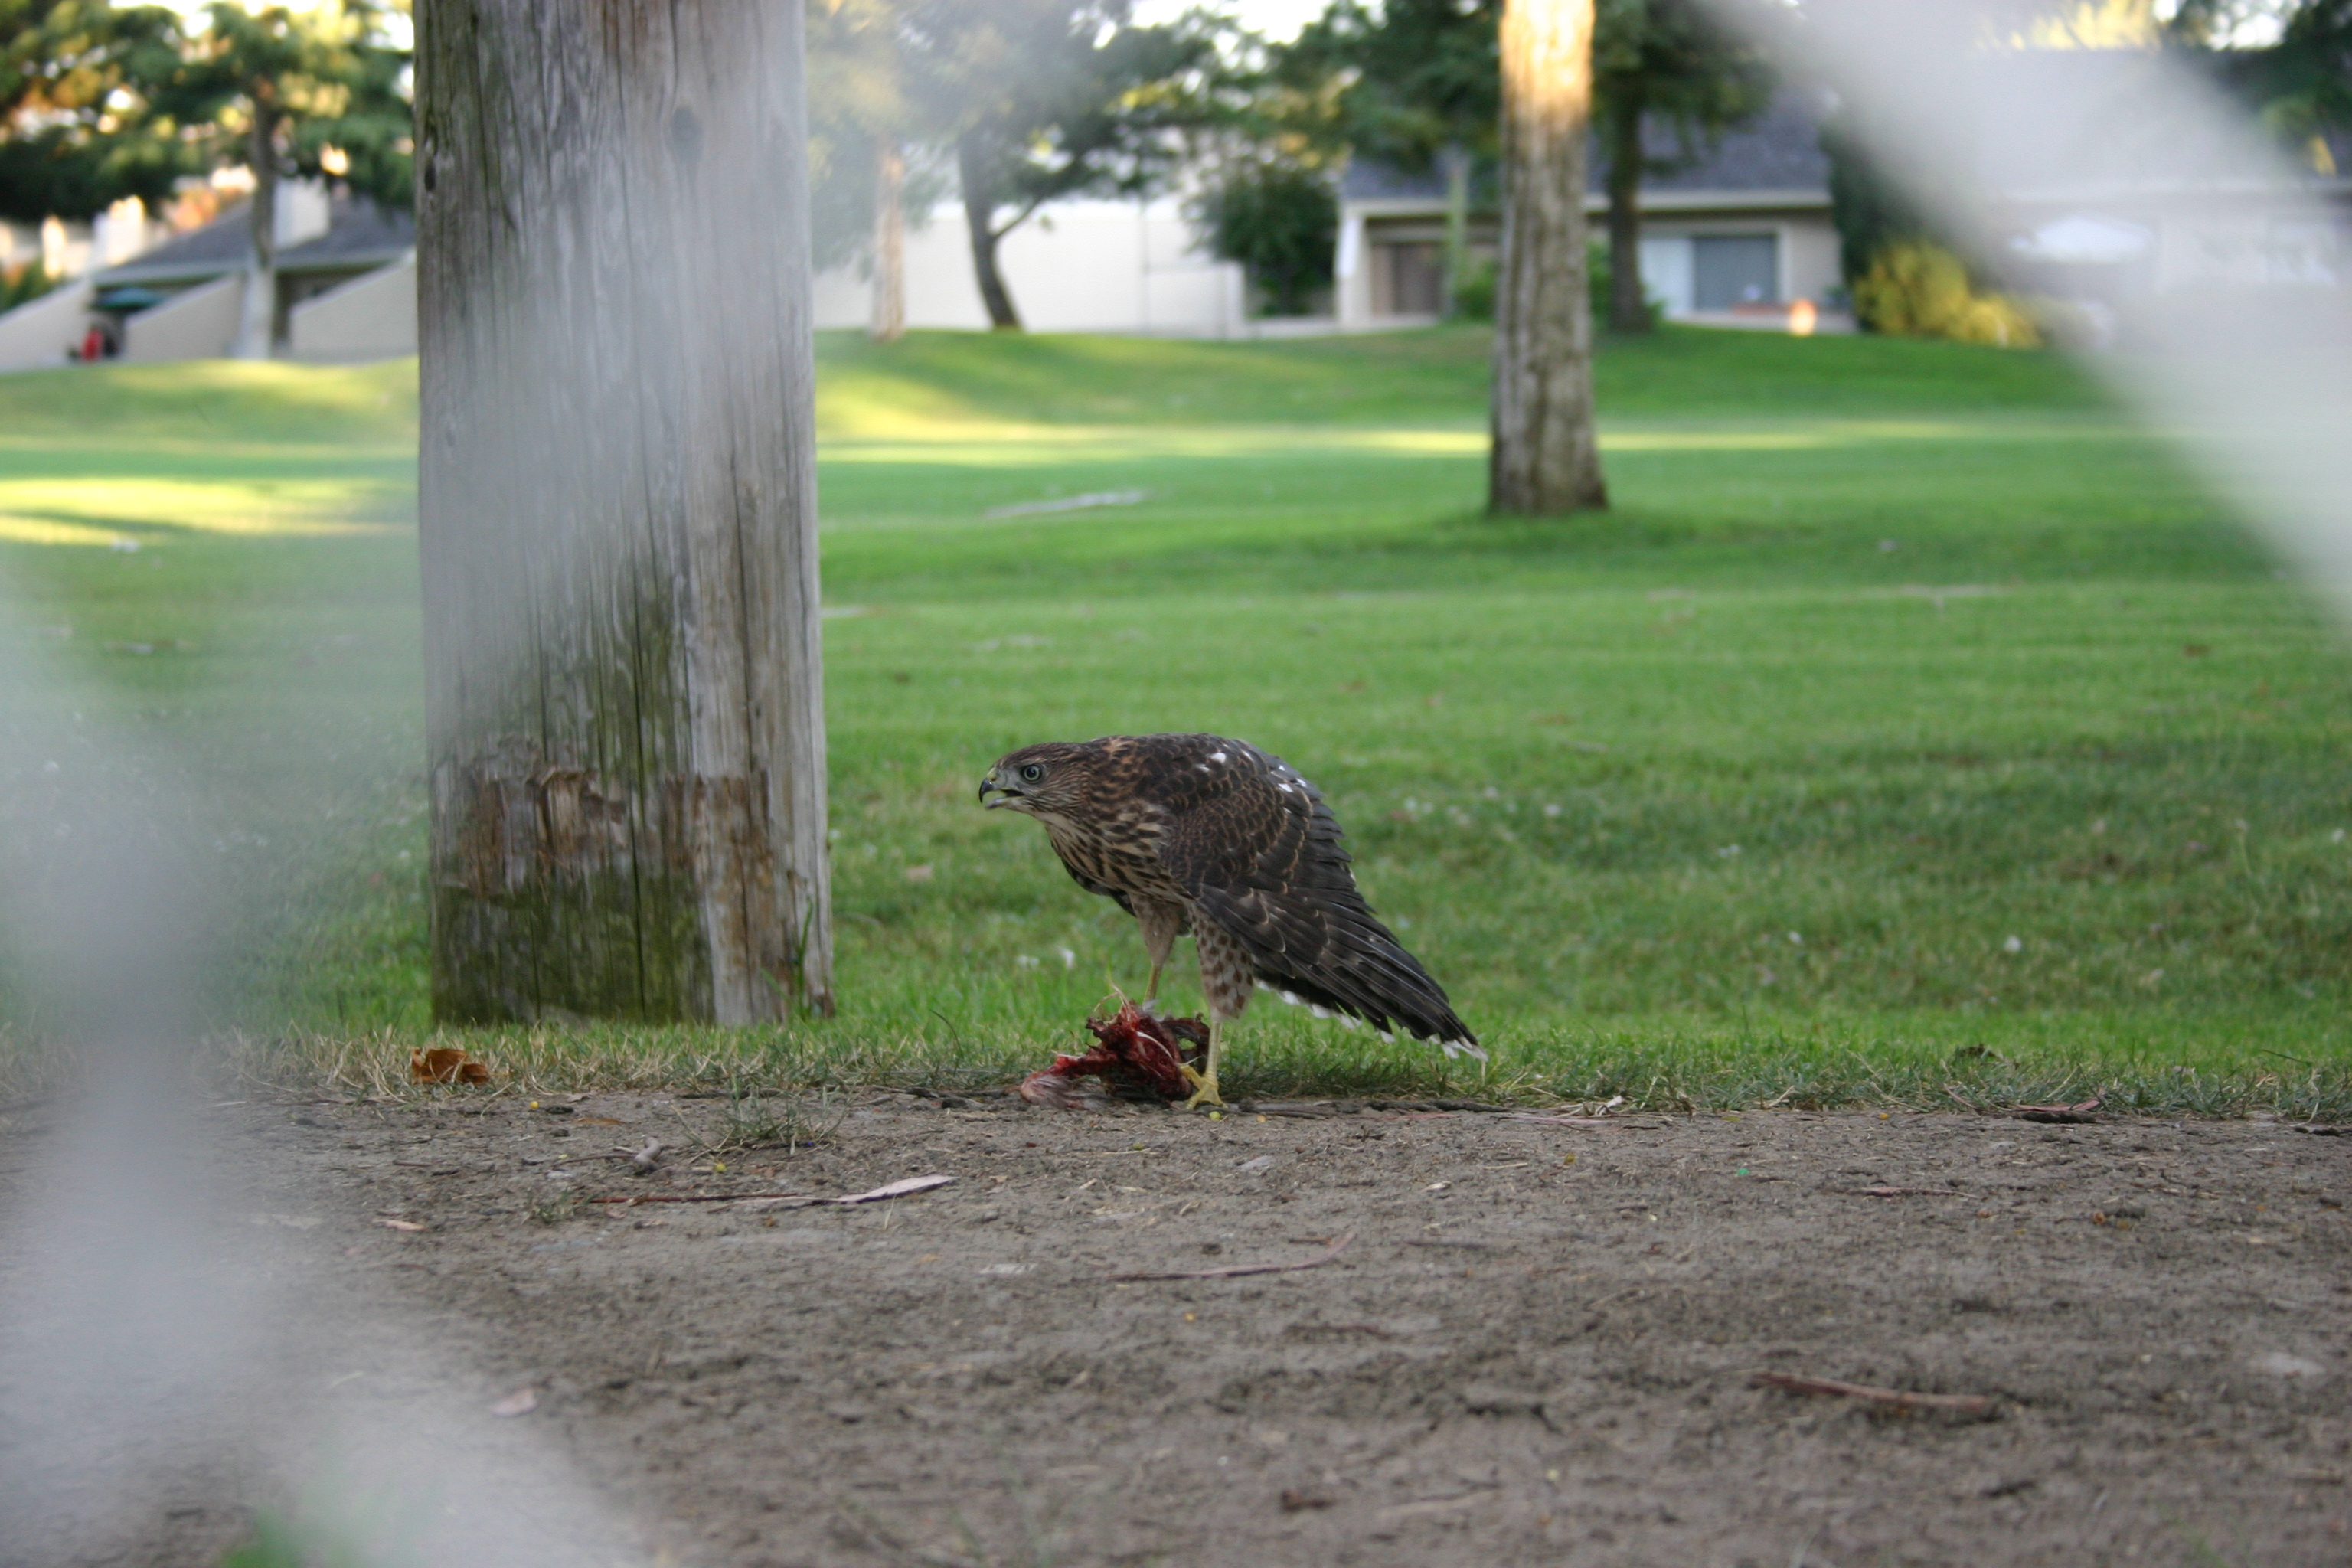 This is either a Sharp-shinned Hawk or a Cooper's Hawk, eating a smaller bird. I believe it is a juvenile (fledged some weeks ago). This hawk family lived in a eucalyptus tree on a golf course.